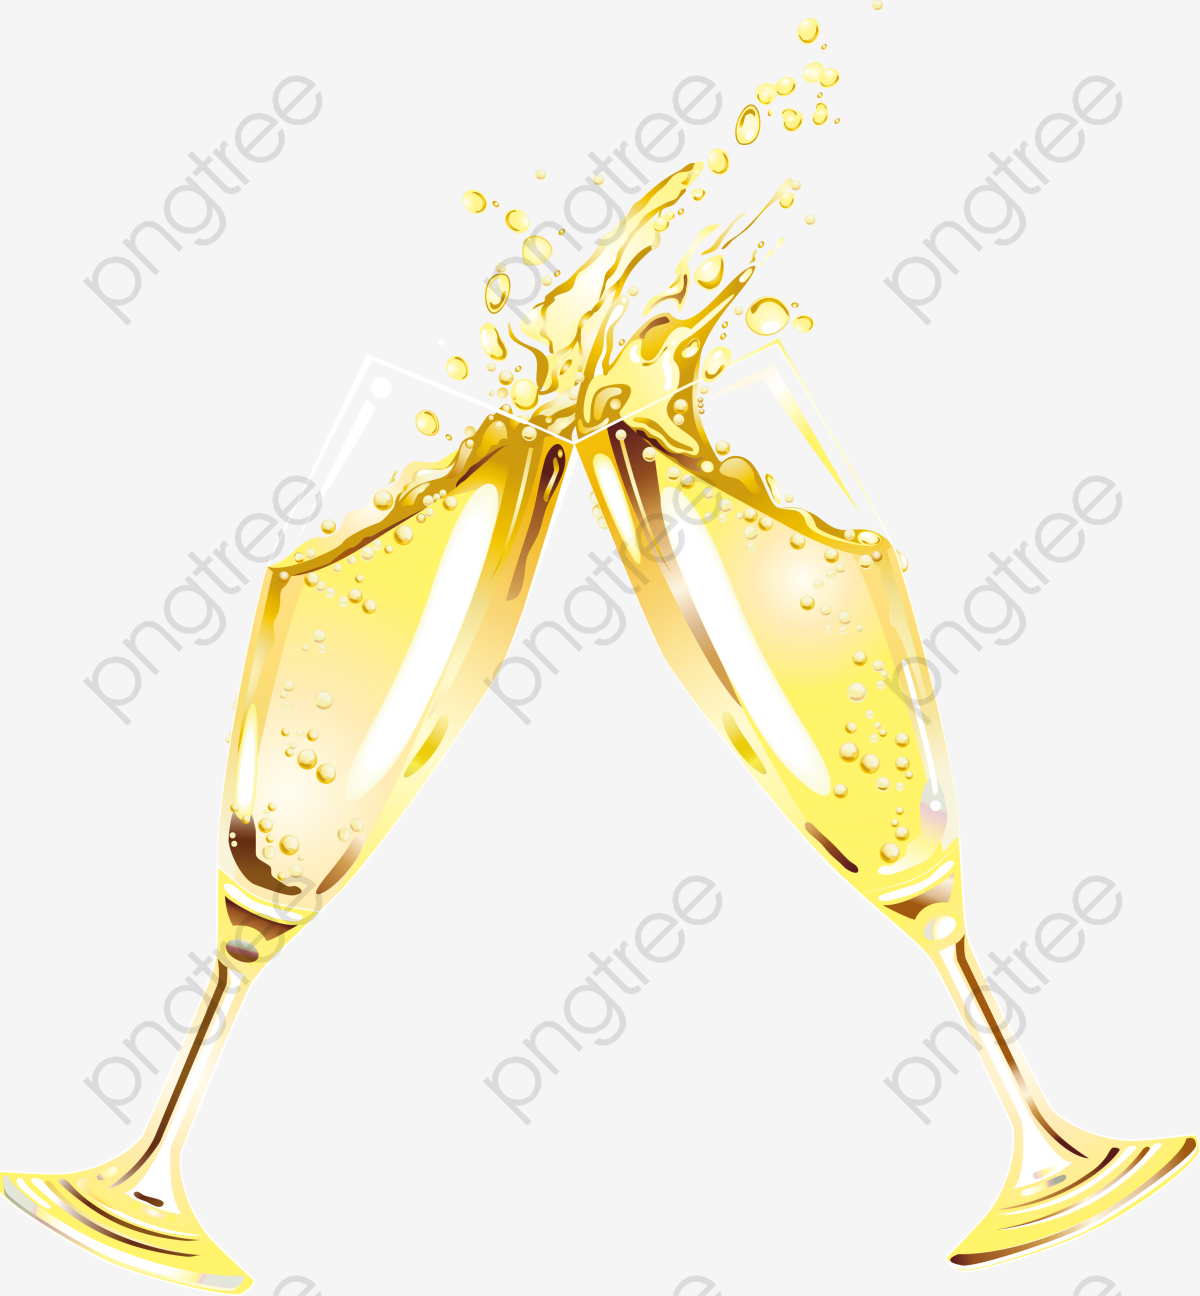 Champaign clipart champagne flute. Download for free png